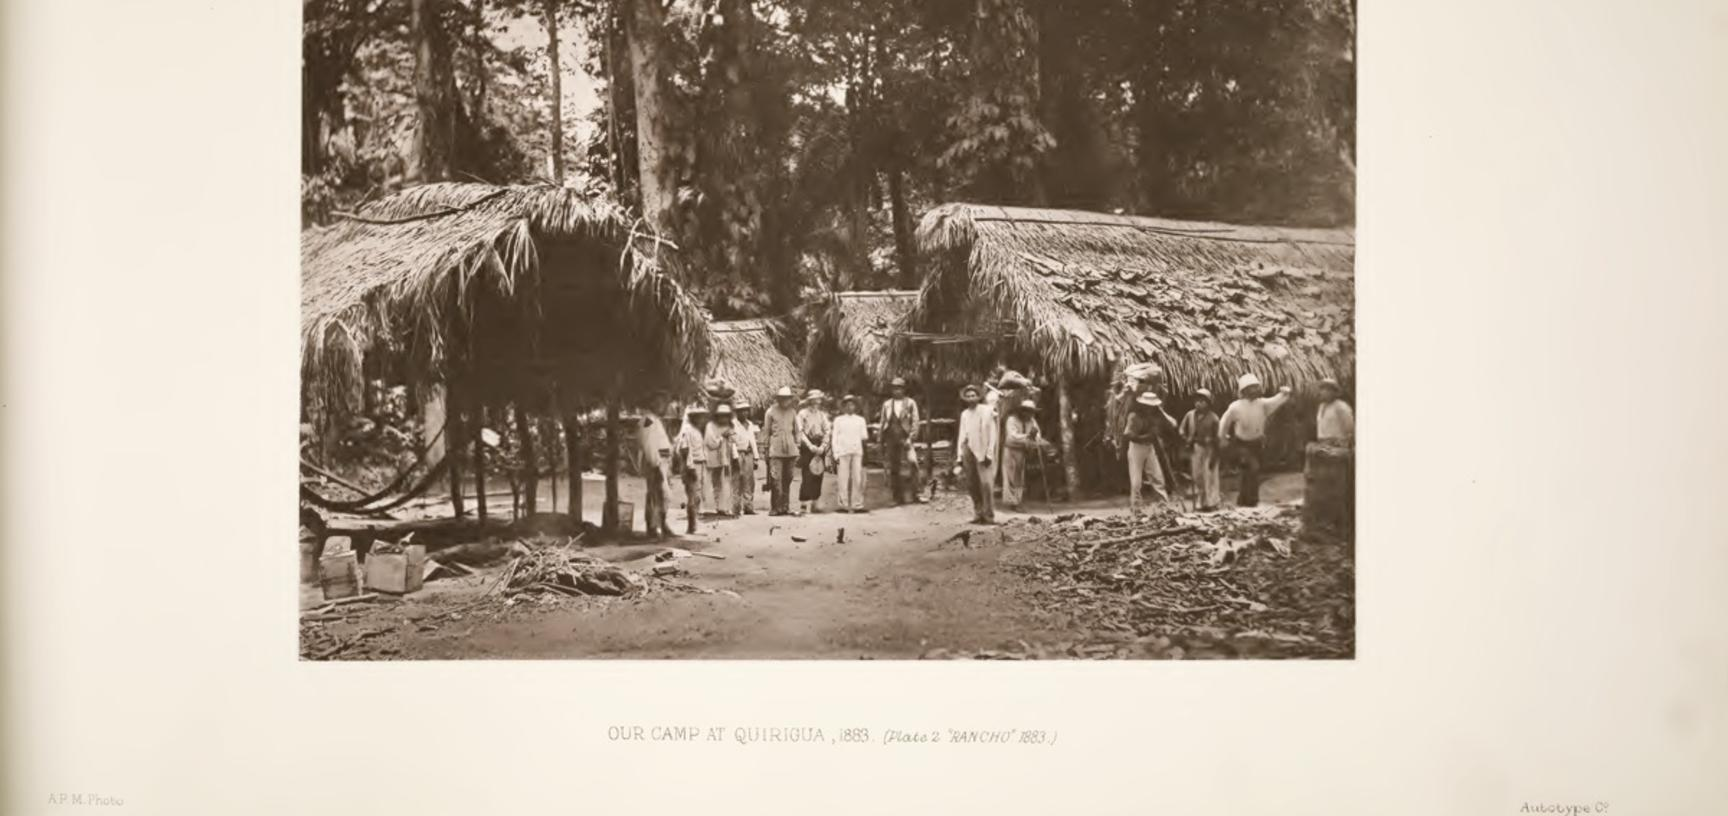 'Our Camp at Quirigua, 1883.' A photograph taken by Alfred Maudslay and reproduced in his multi-part Archaeology (1889–1902), part of a larger series known as the Biologia Centrali-Americana.